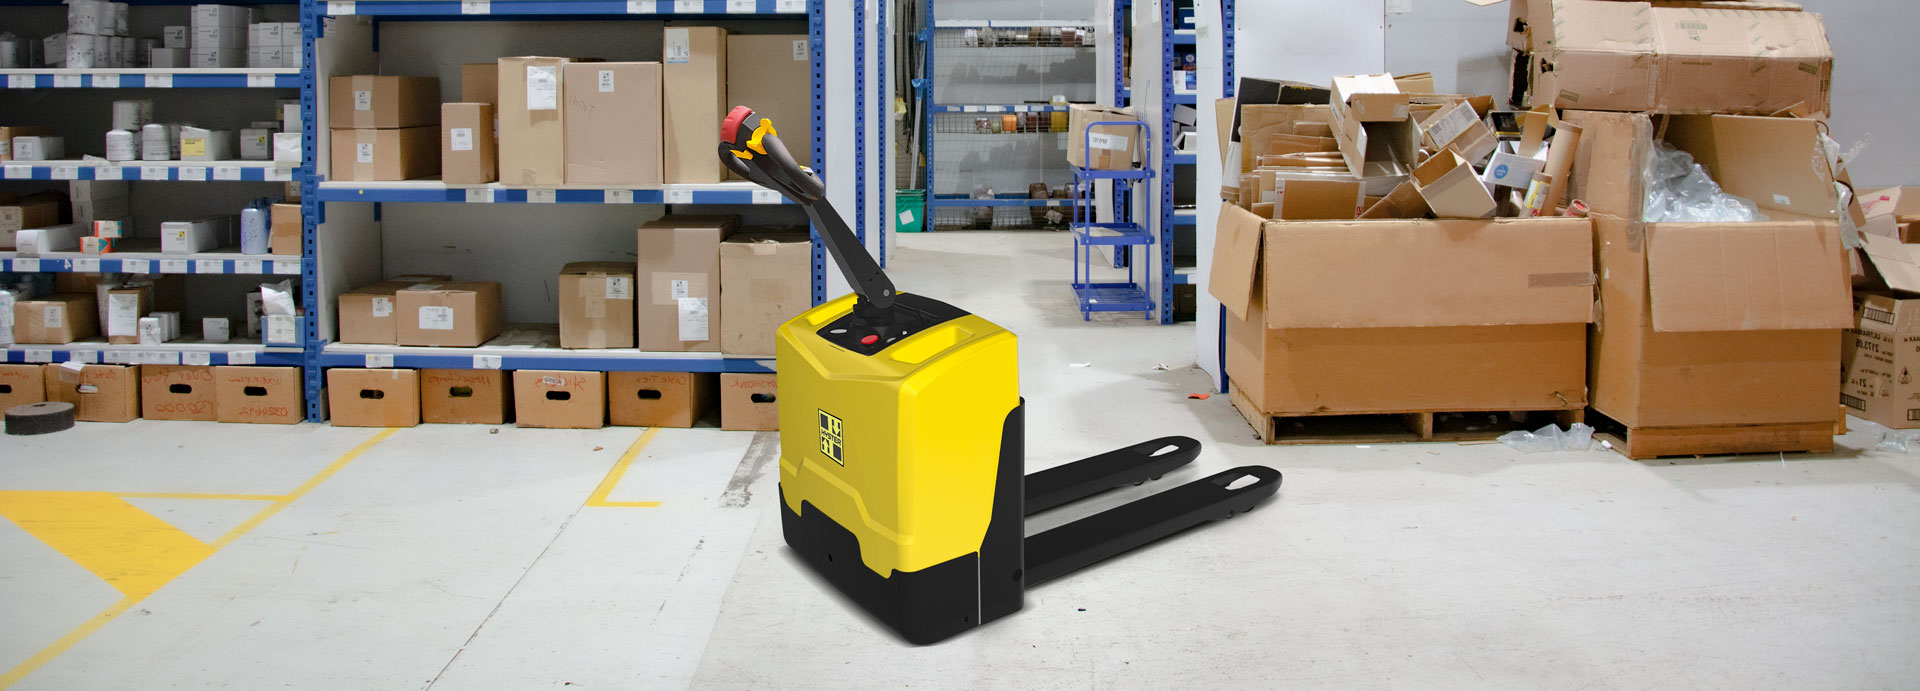 Hyster P2.0UTE Electric Pallet Truck